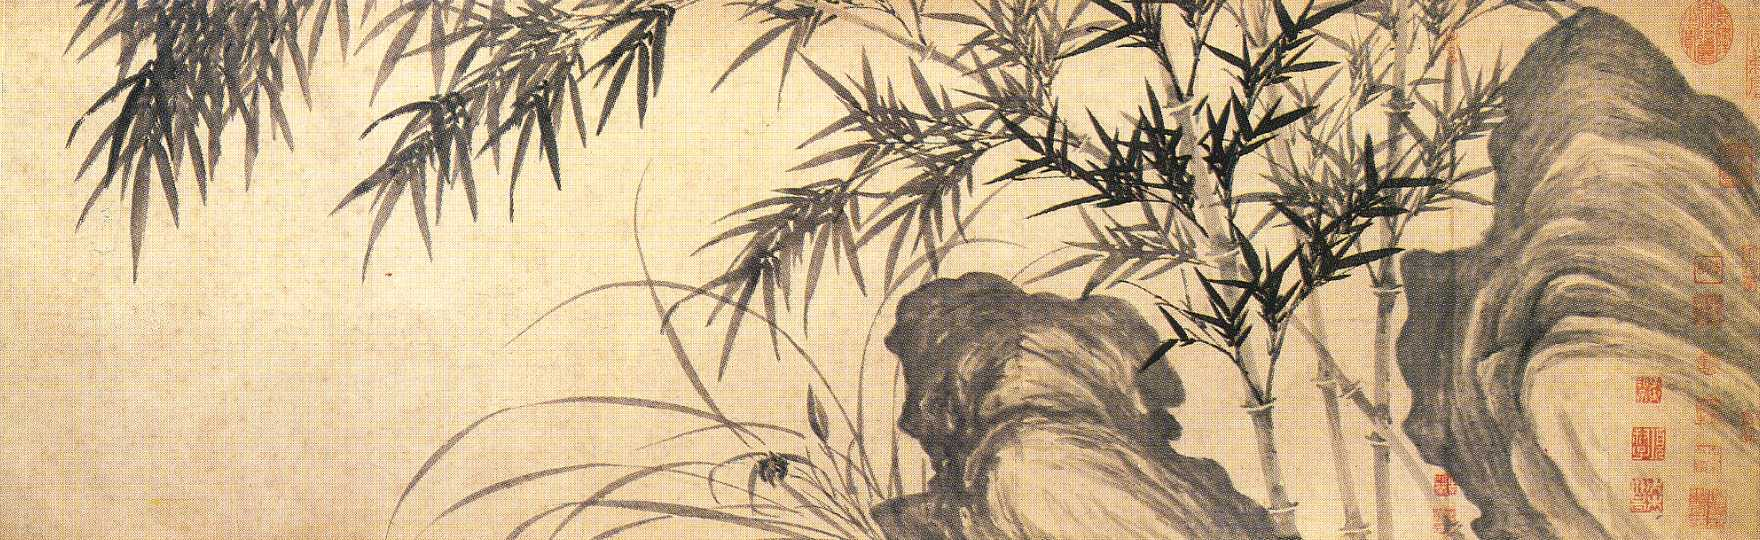 chinese painting essays We offer hand picked and handmade chinese brushes and japanese brushes perfect for brush painting, calligraphy writing and sumi-e painting.